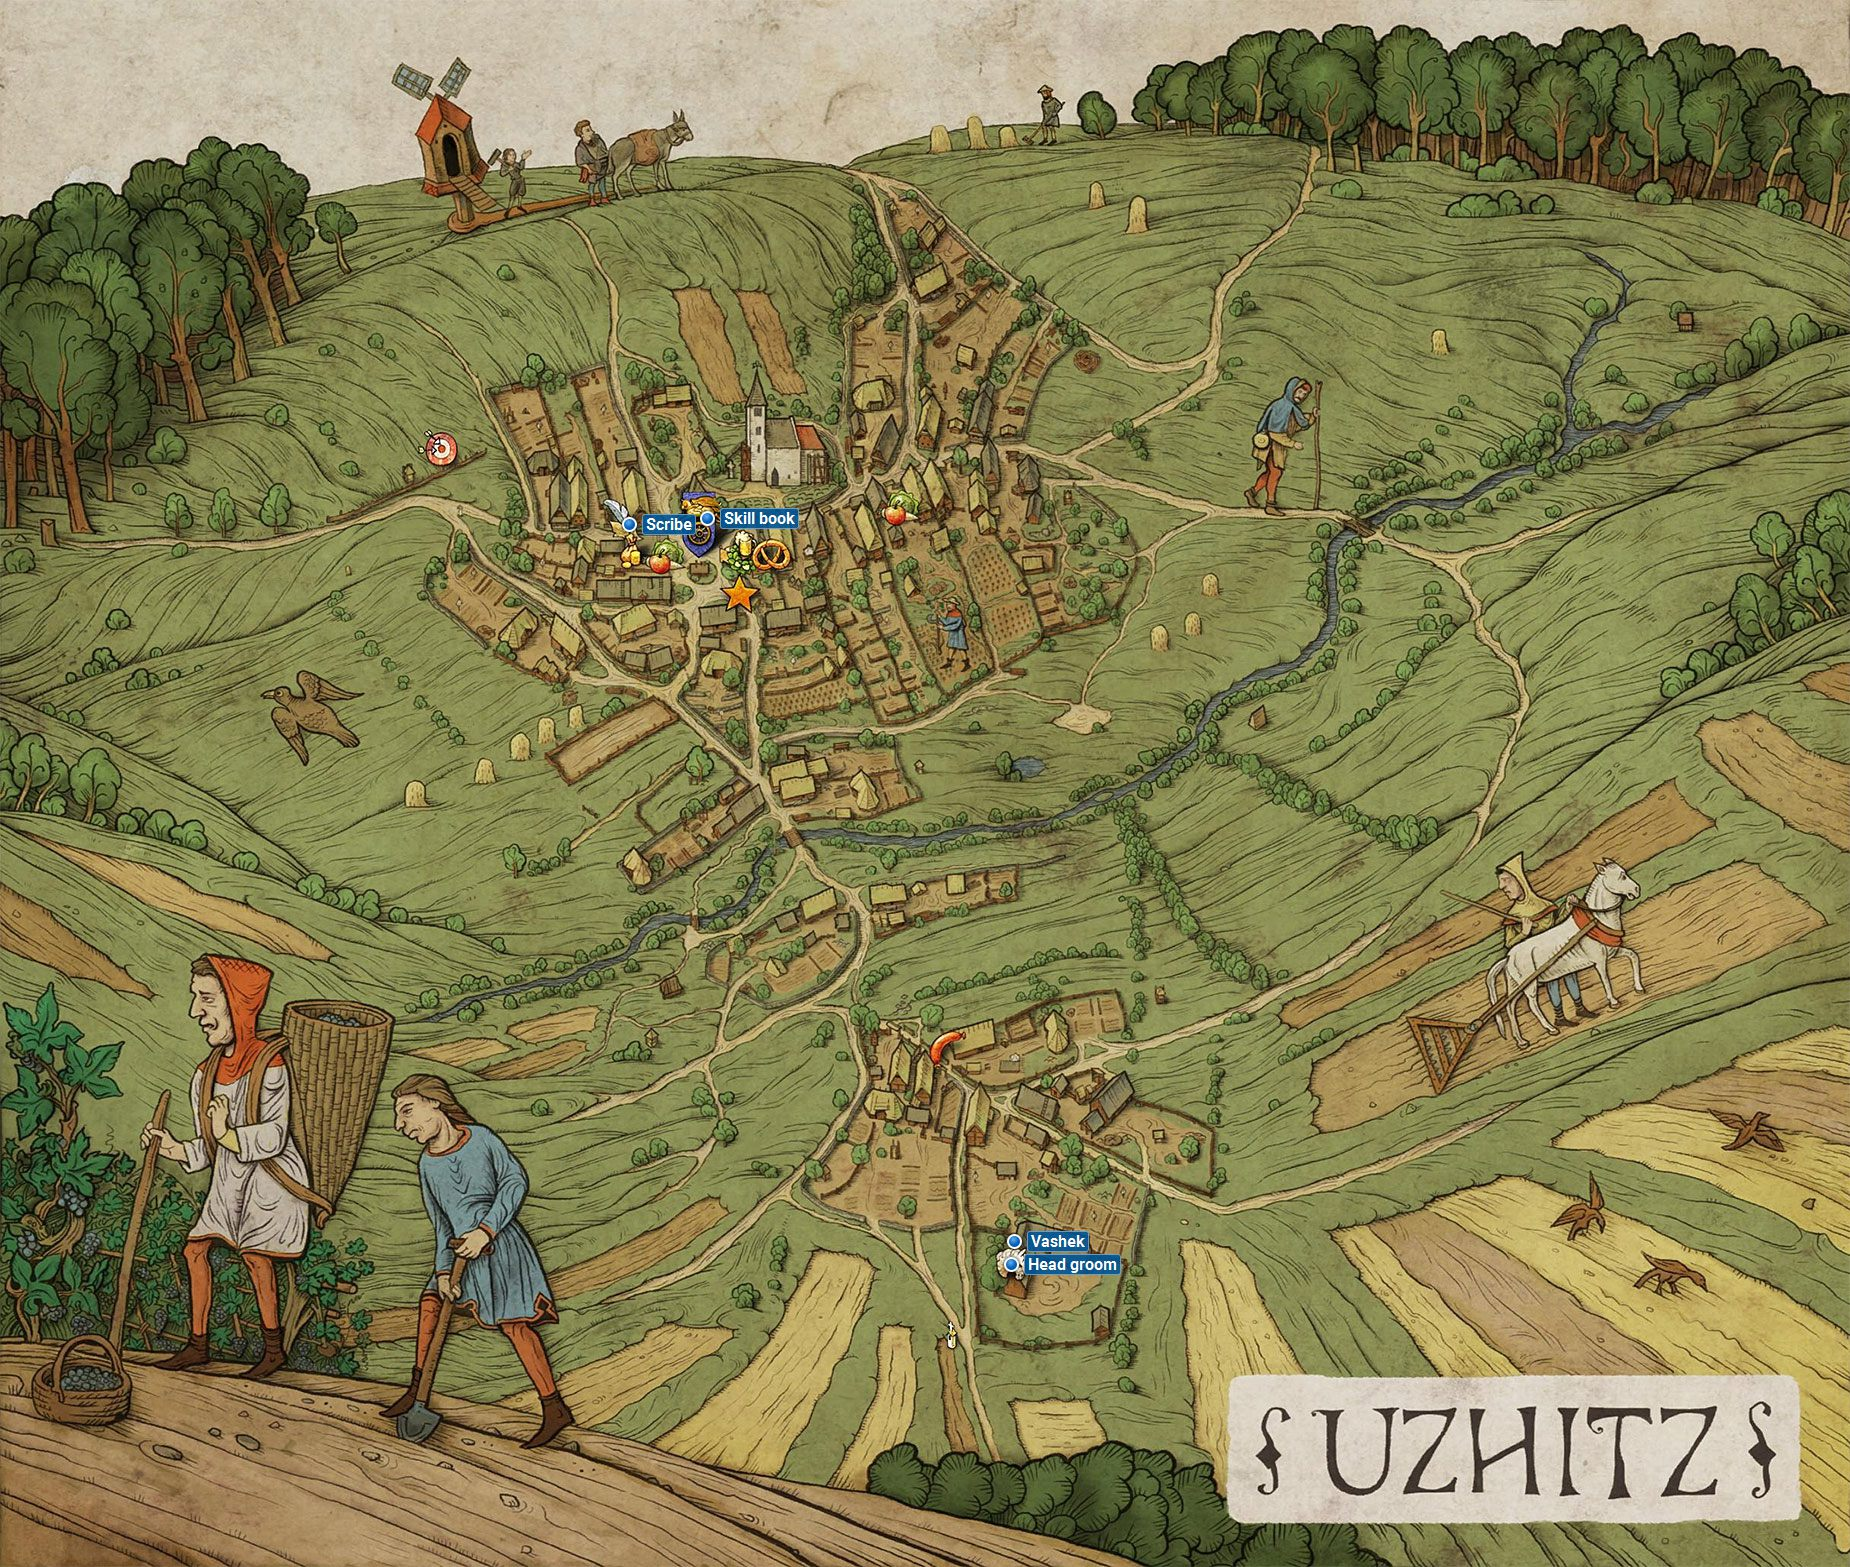 Kingdom Come Deliverance - Uzhitz